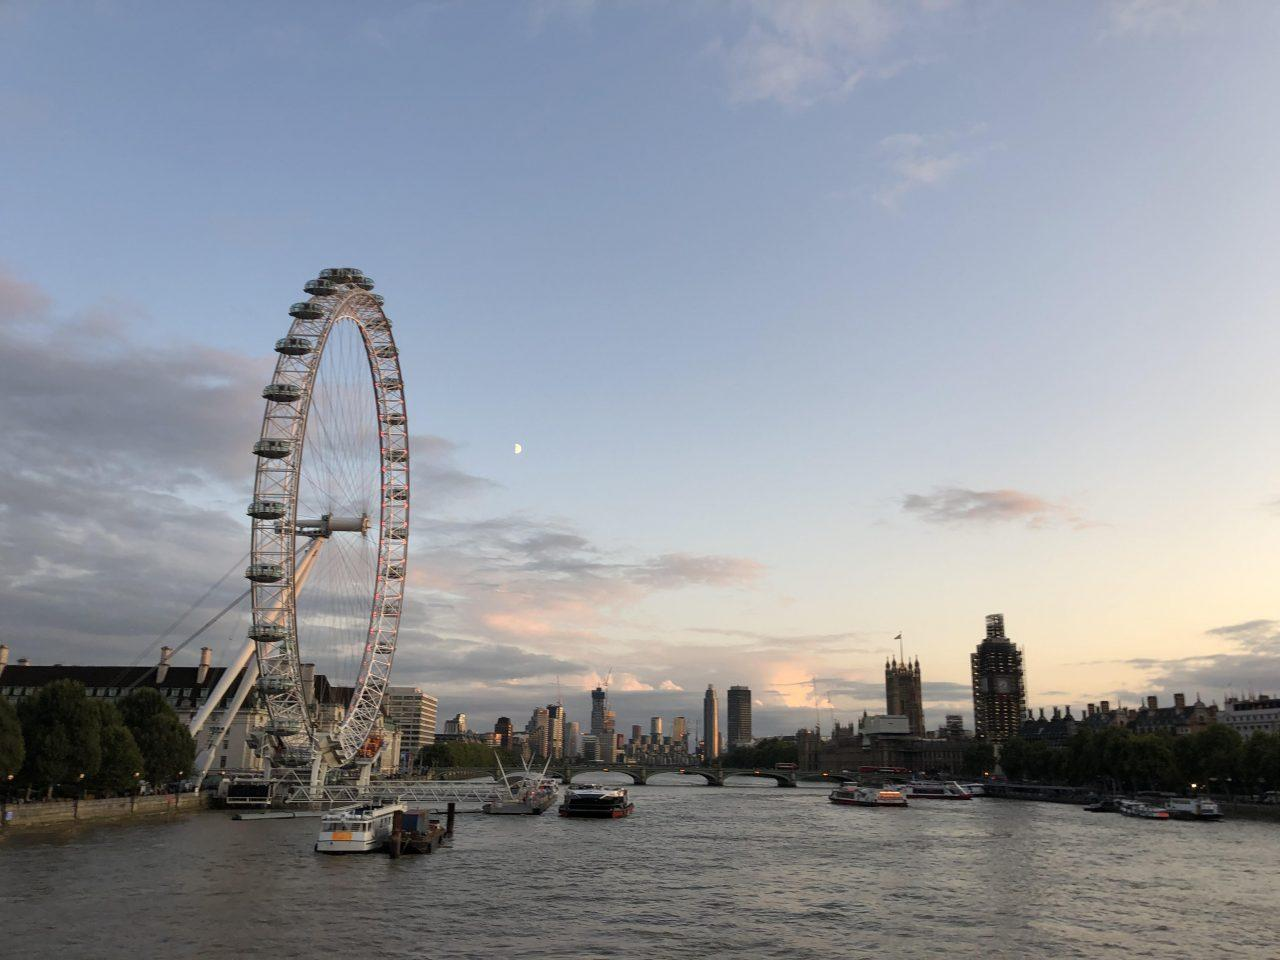 Natalia had just arrived in London when she decided to take a walk over the bridge overlooking the London eye and the scaffolding on the Big Ben. The sun was going down as she was on her way to dinner. Photo credit: Natalia Salas